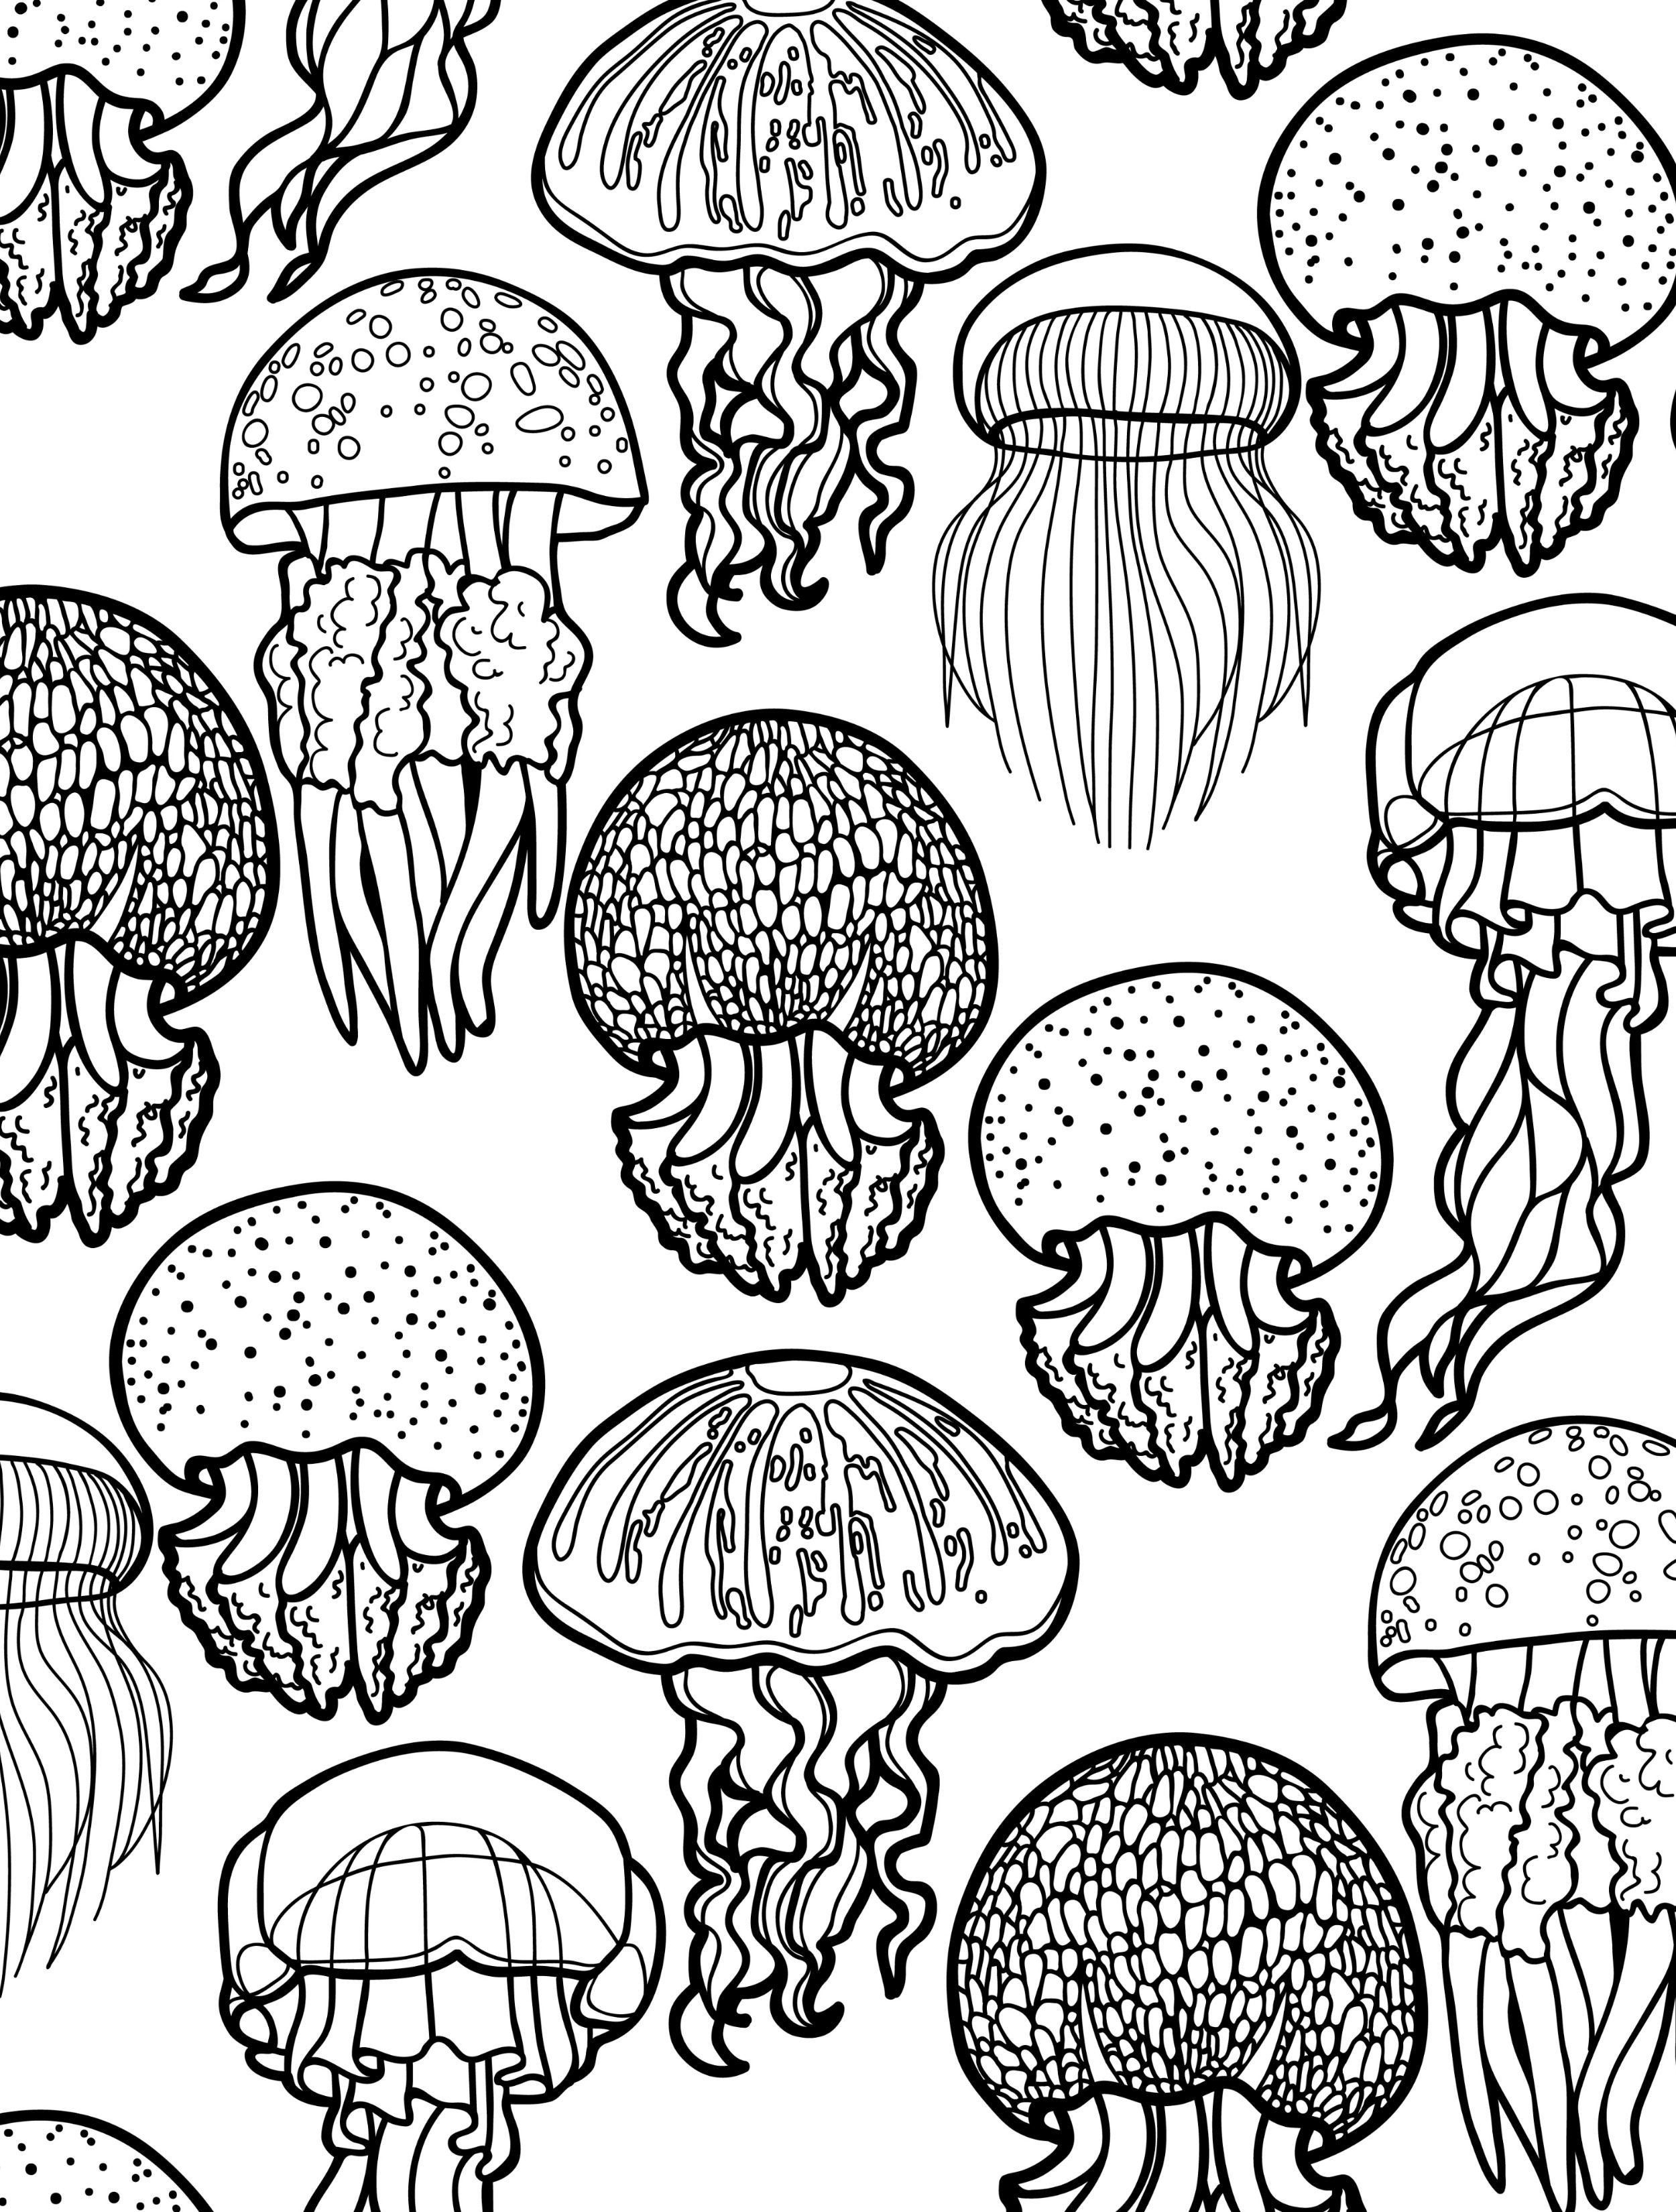 Ocean Animals Coloring Pages Best Of Ocean Zone Coloring Pages Elegant 23 Free Printable Insec Animal Coloring Pages Ocean Coloring Pages Animal Coloring Books